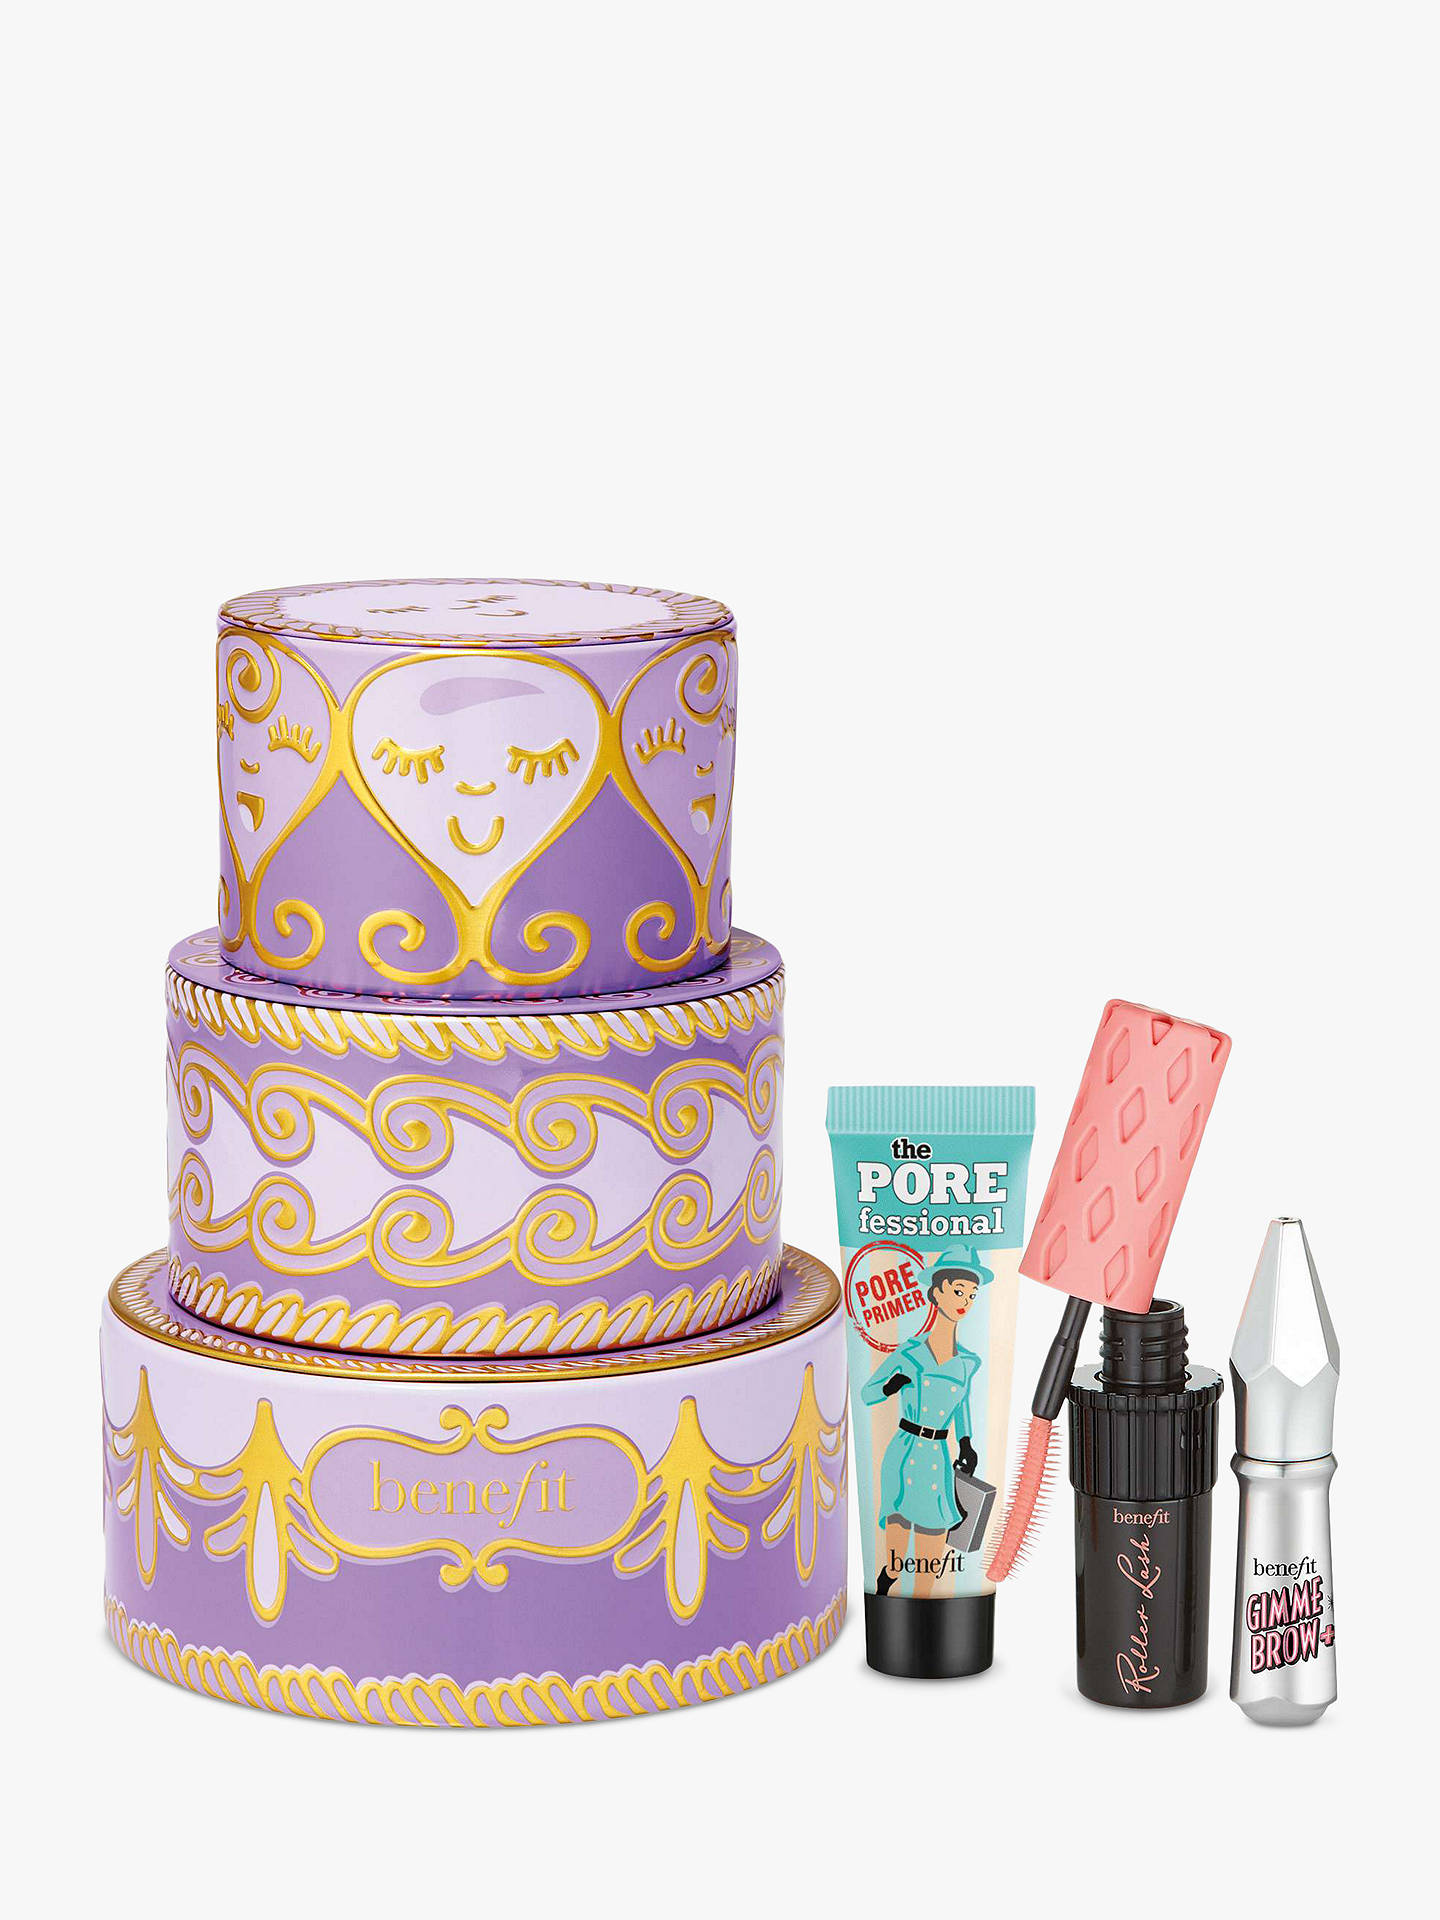 BuyBenefit Confection Cuties Holiday Makeup Gift Set Online at johnlewis.com